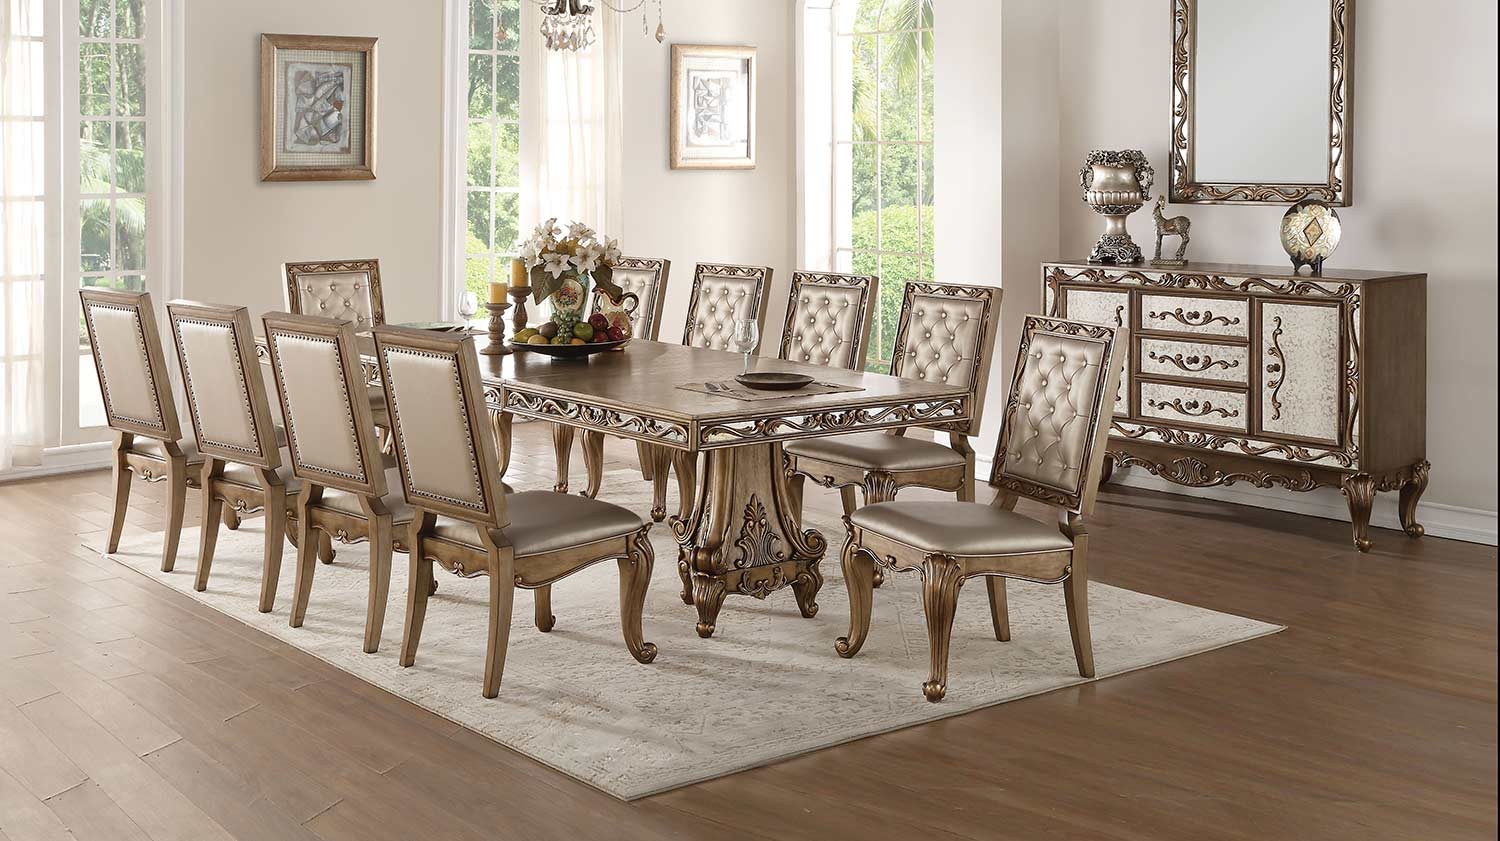 Acme Orianne Dining Set with Double Pedestal - Antique Gold